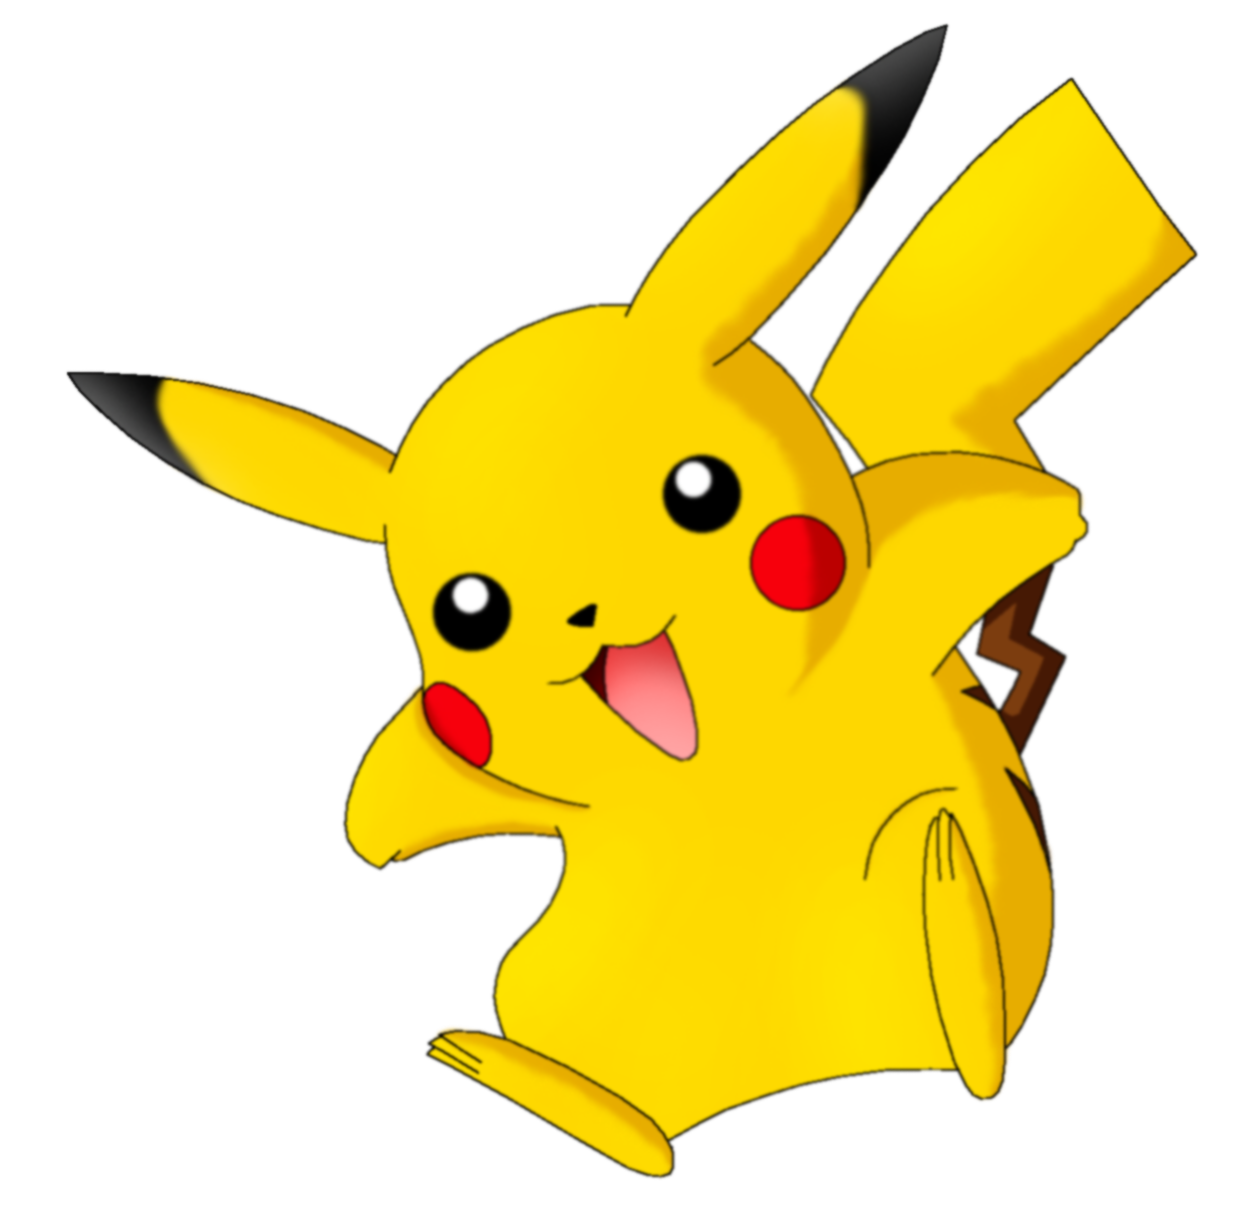 Pokeball clipart cute pikachu. Image result for pokemon